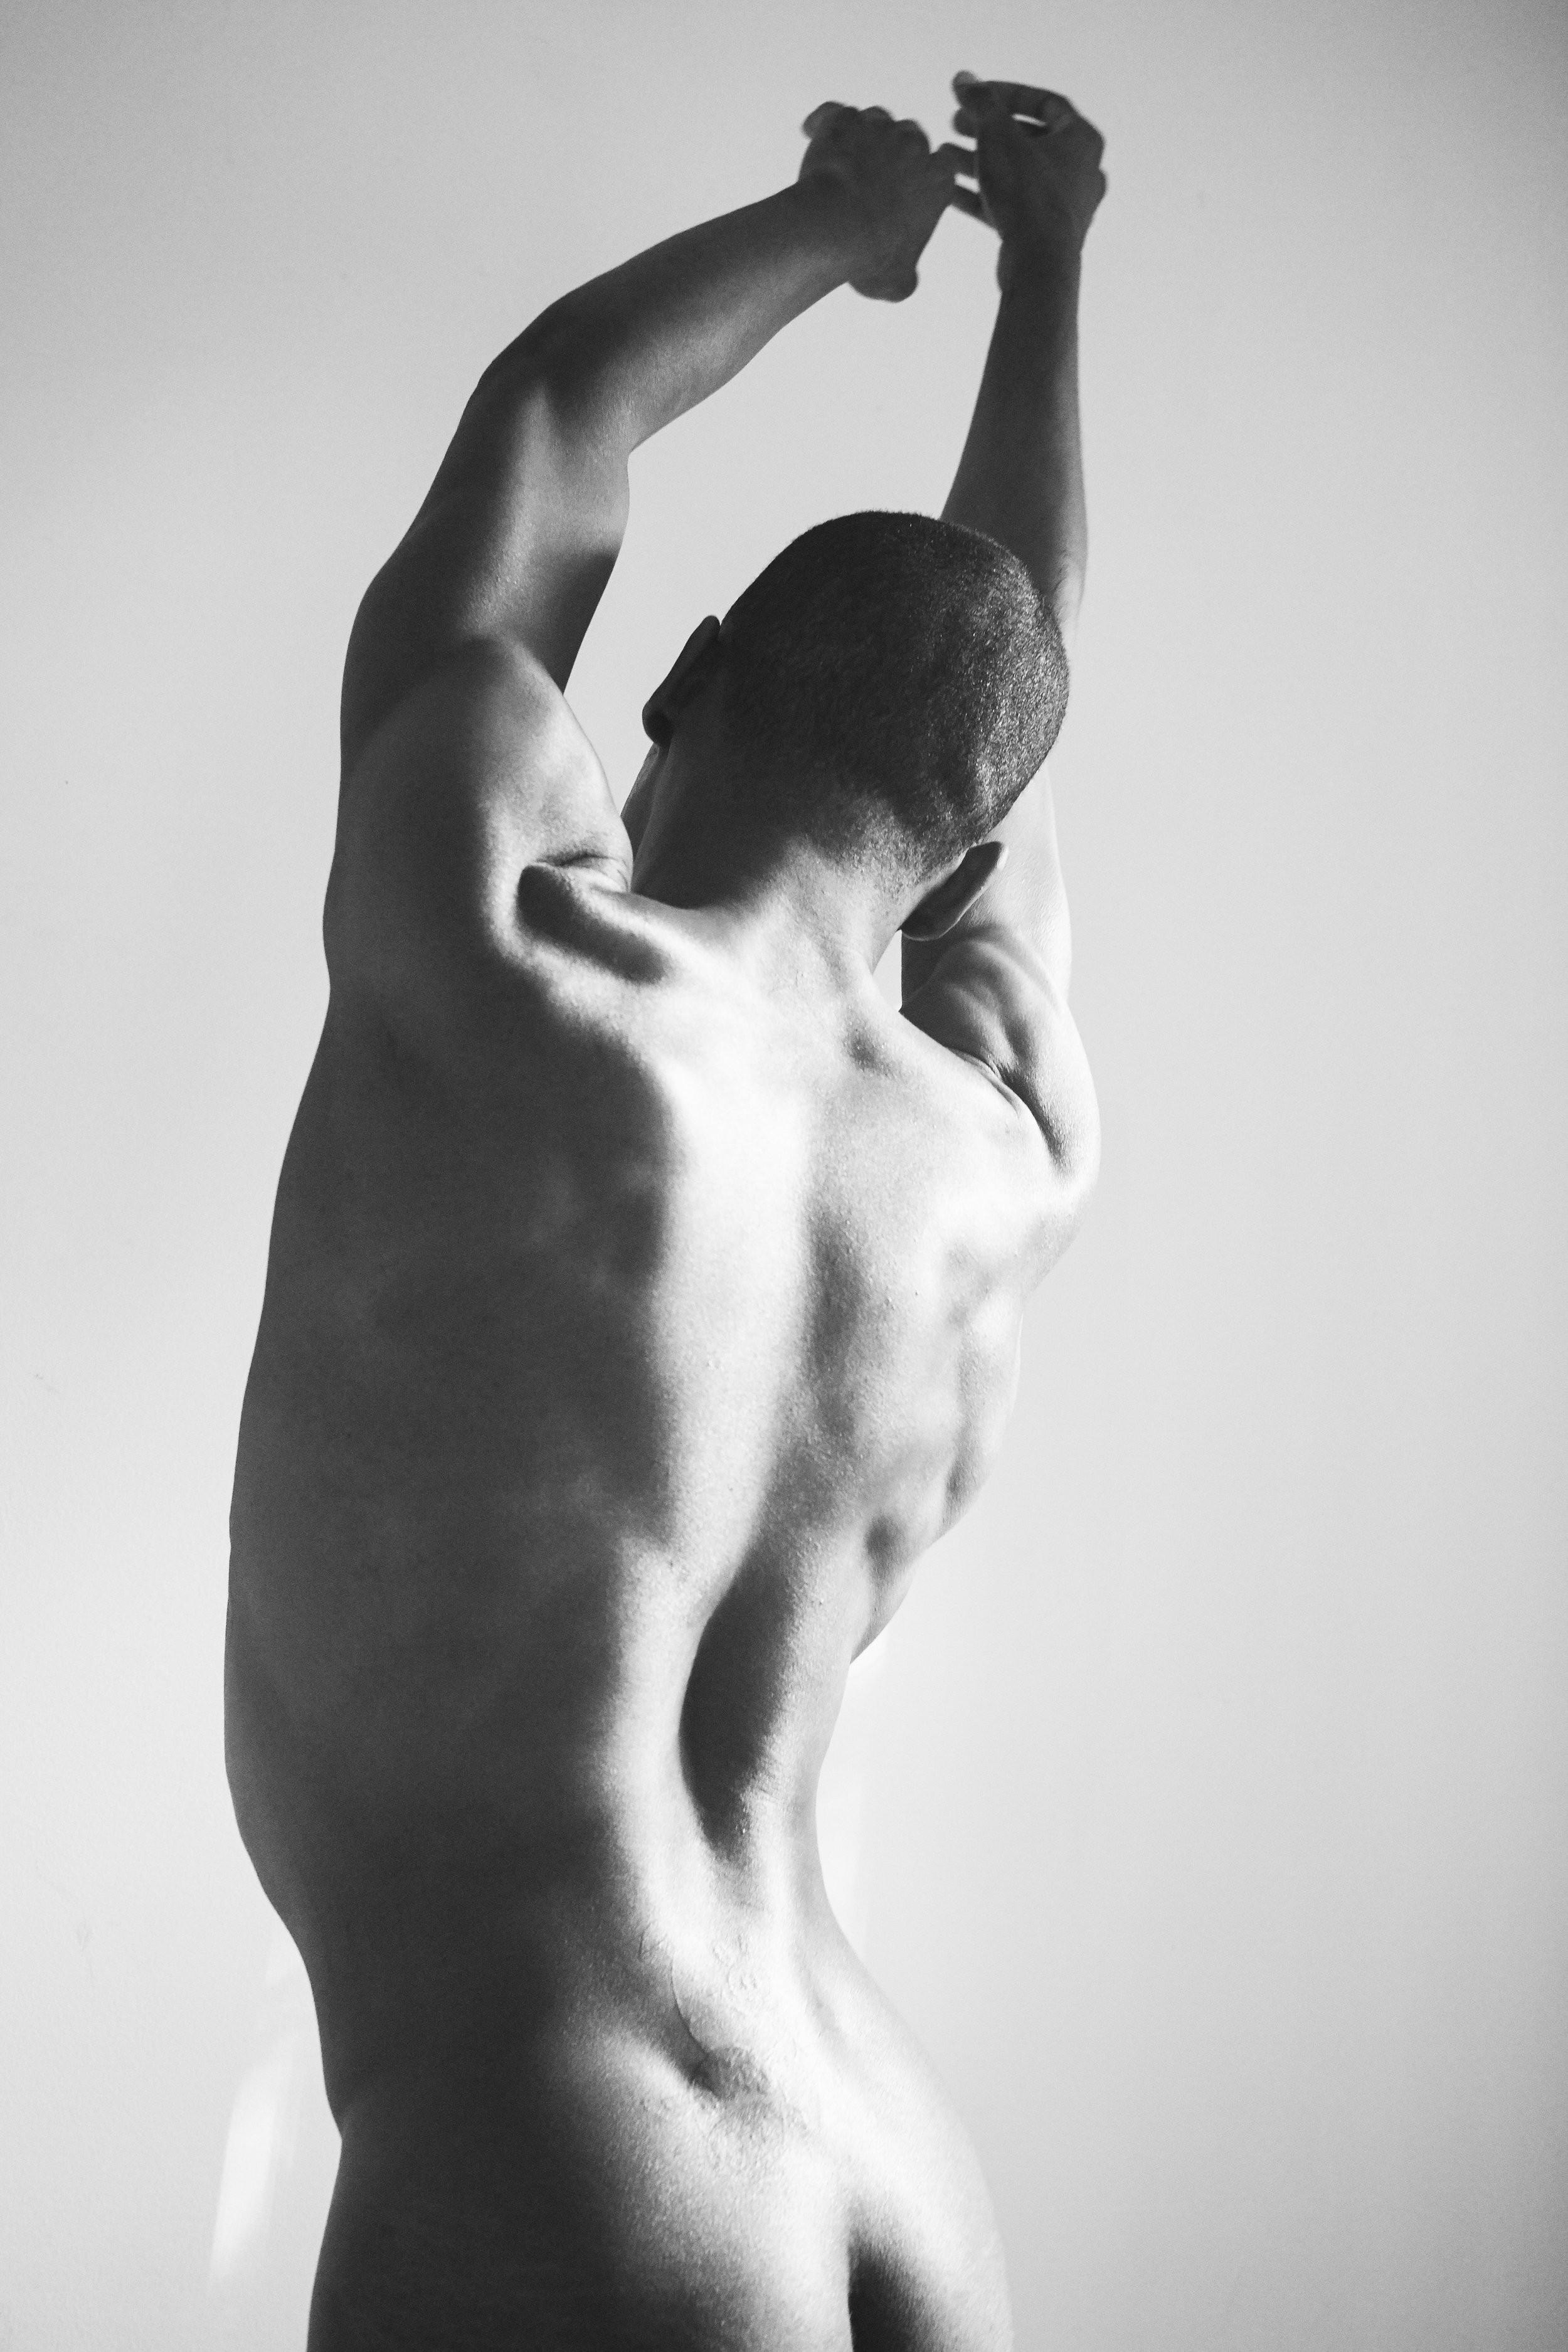 [Image description: photograph of a person standing, naked, against a pale background, with their back toward the camera. Their arms are raised and touching above their head, and they stand in a slight lateral bend toward the upper right corner of the image.]